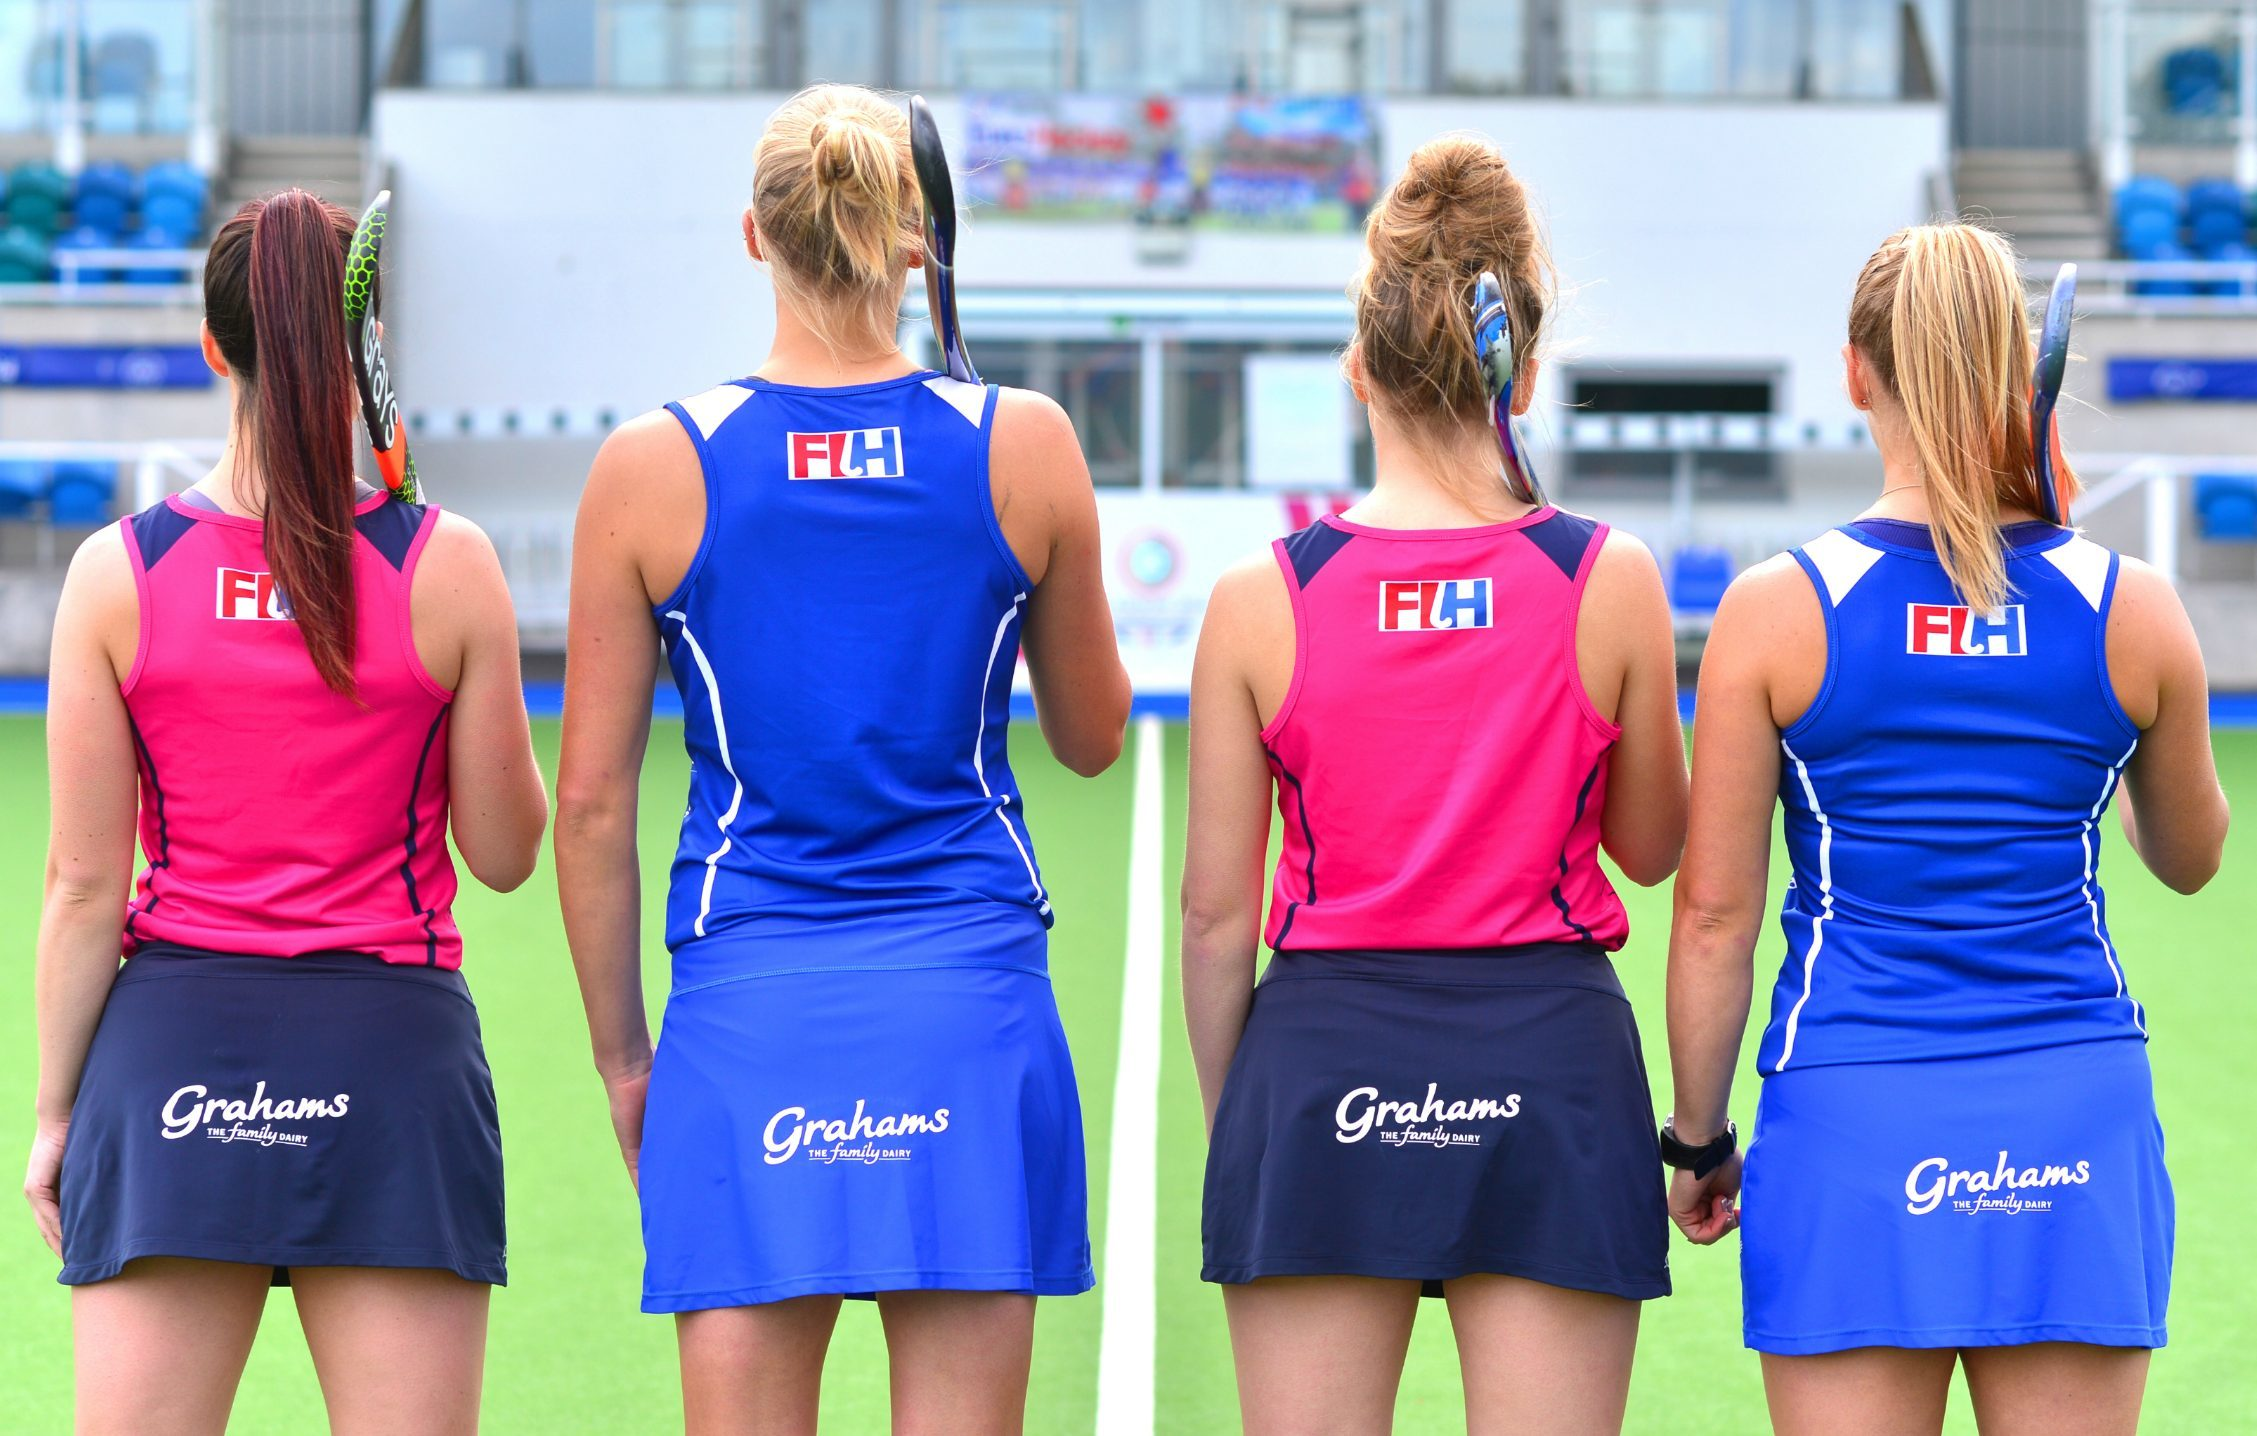 Scotland's Women's Hockey Team get right behind their new sponsors